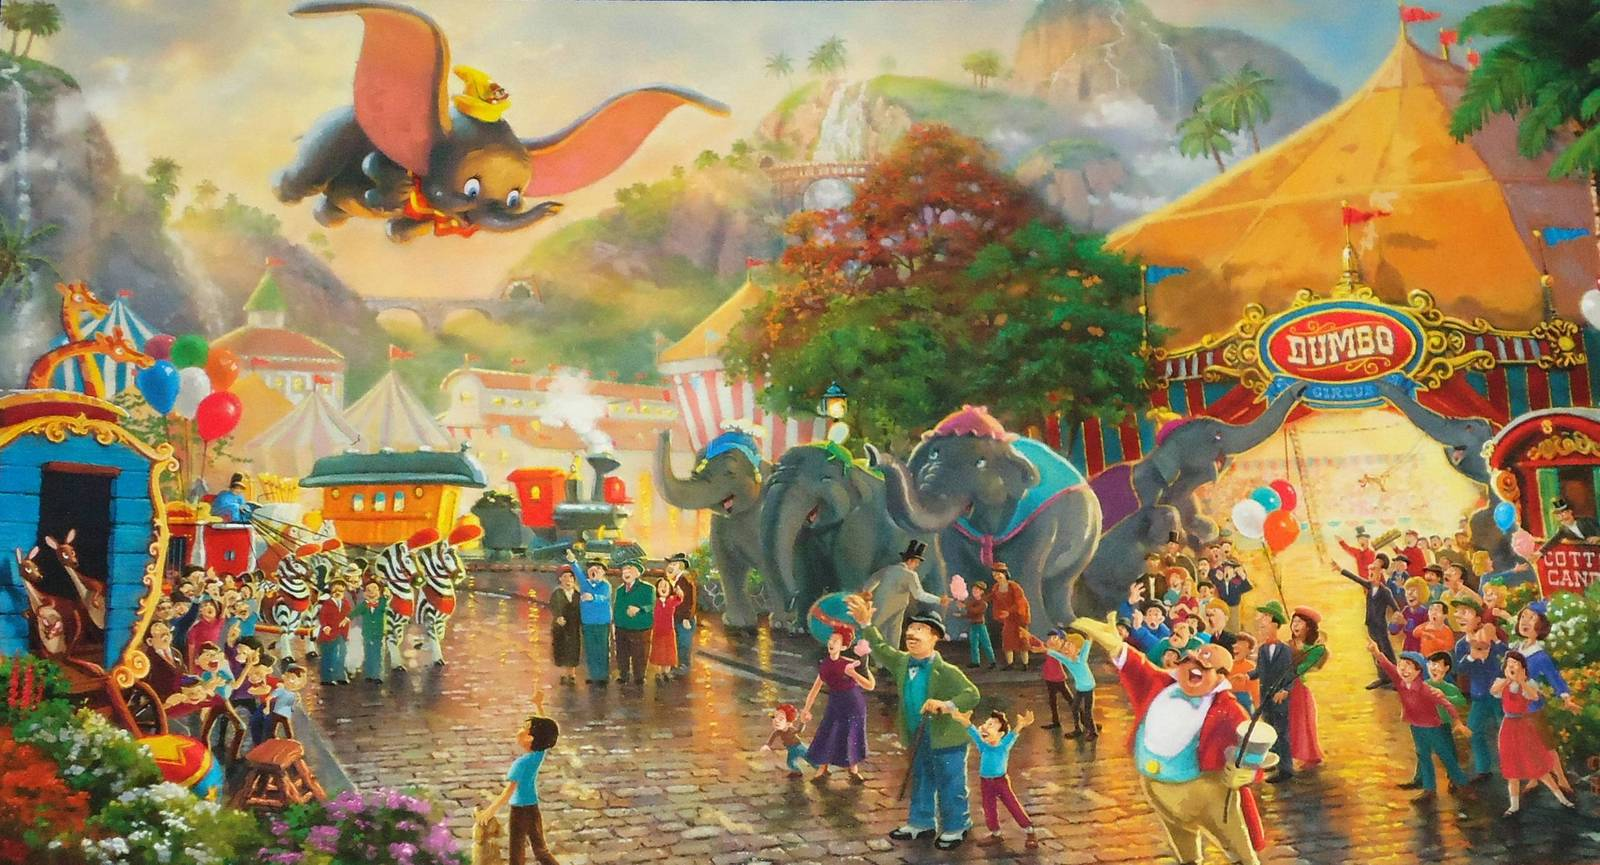 BRAND NEW CAPTIVATING THOMAS KINKADE WALT DISNEY DUMBO ART CARD 75TH ANNIVERSARY